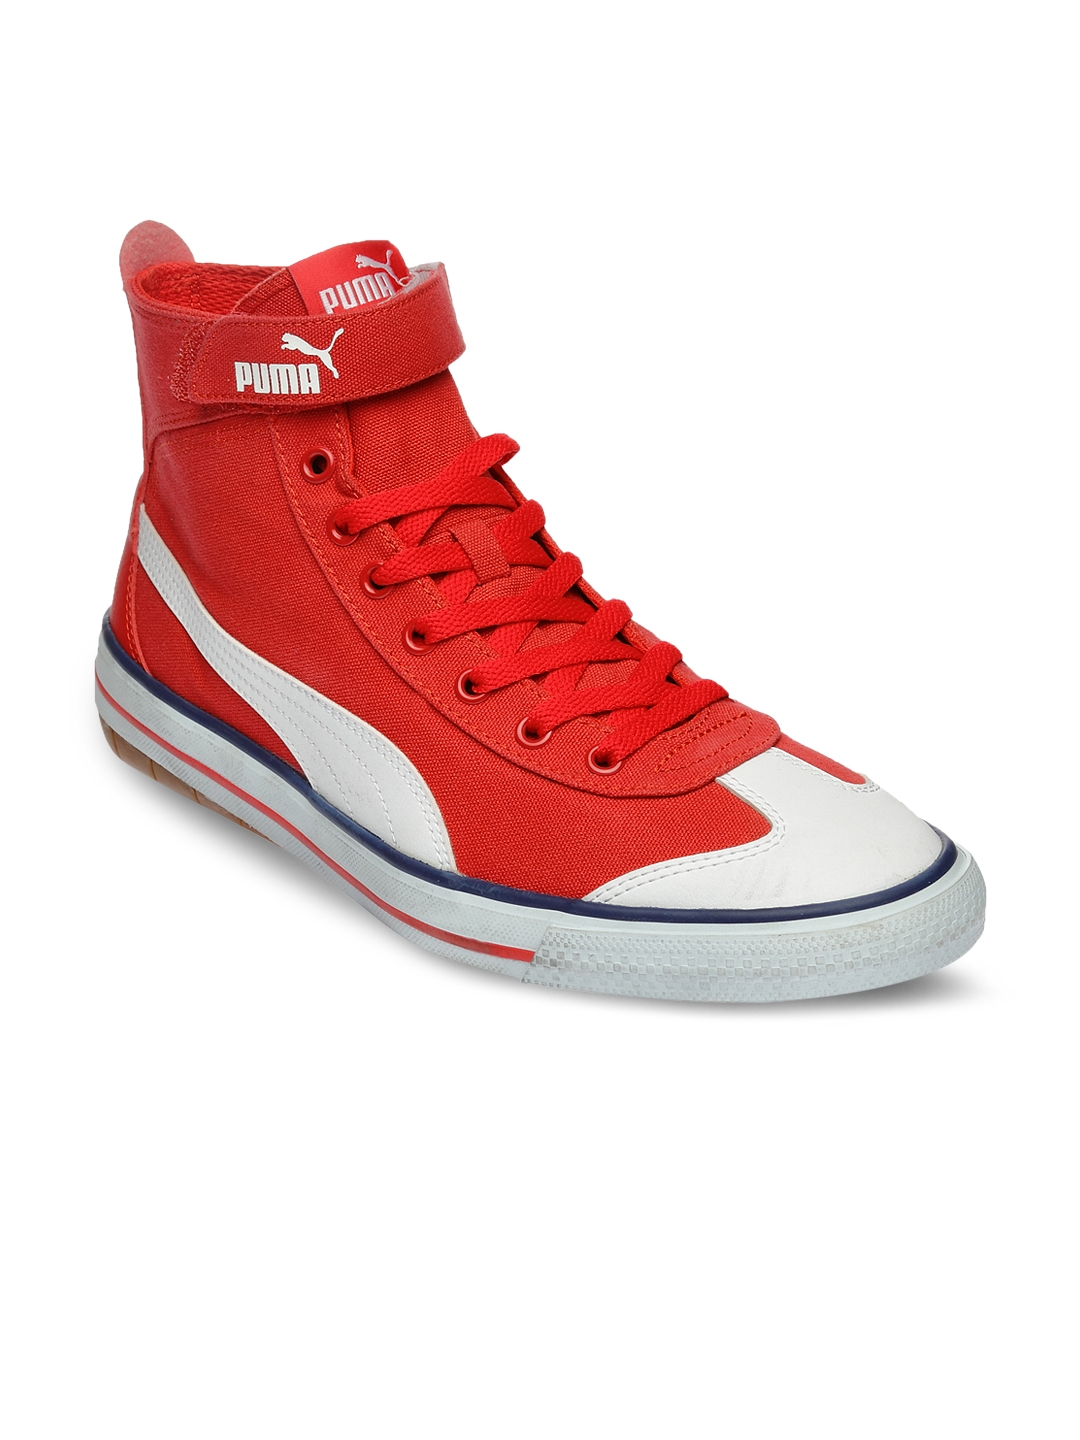 17597598c39 Buy Puma Men Red 917 Mid DP Casual Shoes - Casual Shoes for Men ...